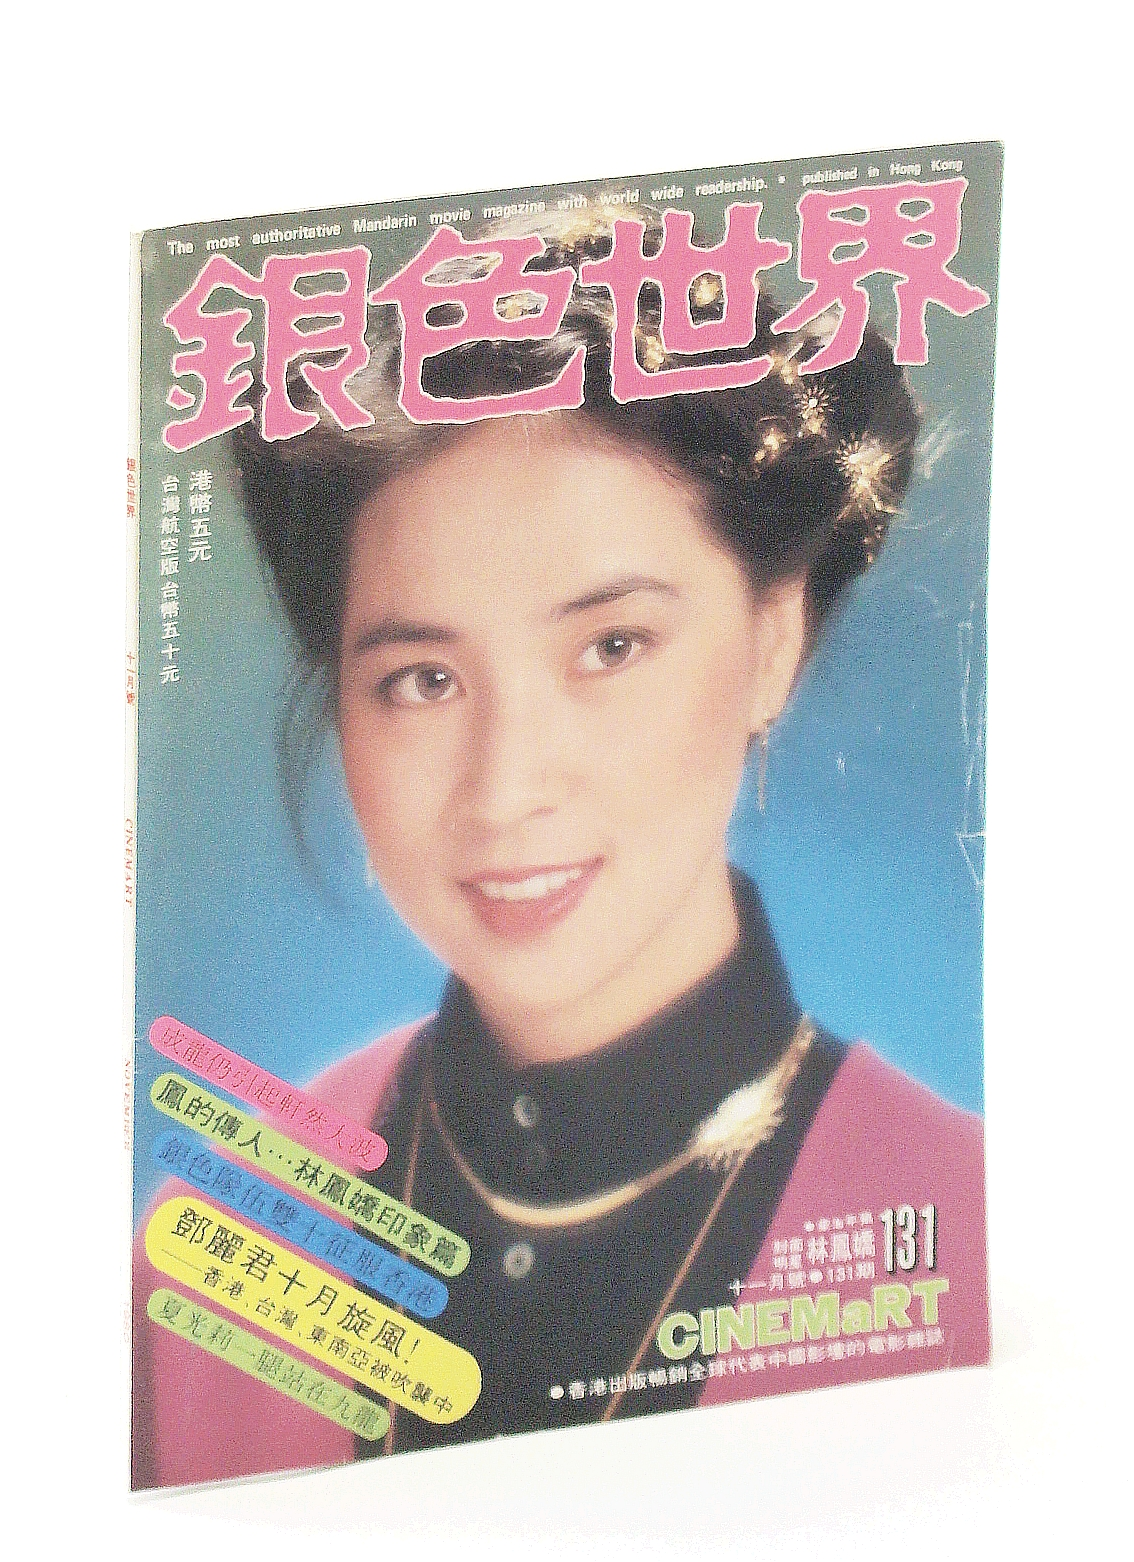 Image for Cinemart - The Most Authoritative Chinese Movie Magazine, November [Nov.] 1980, No. 131